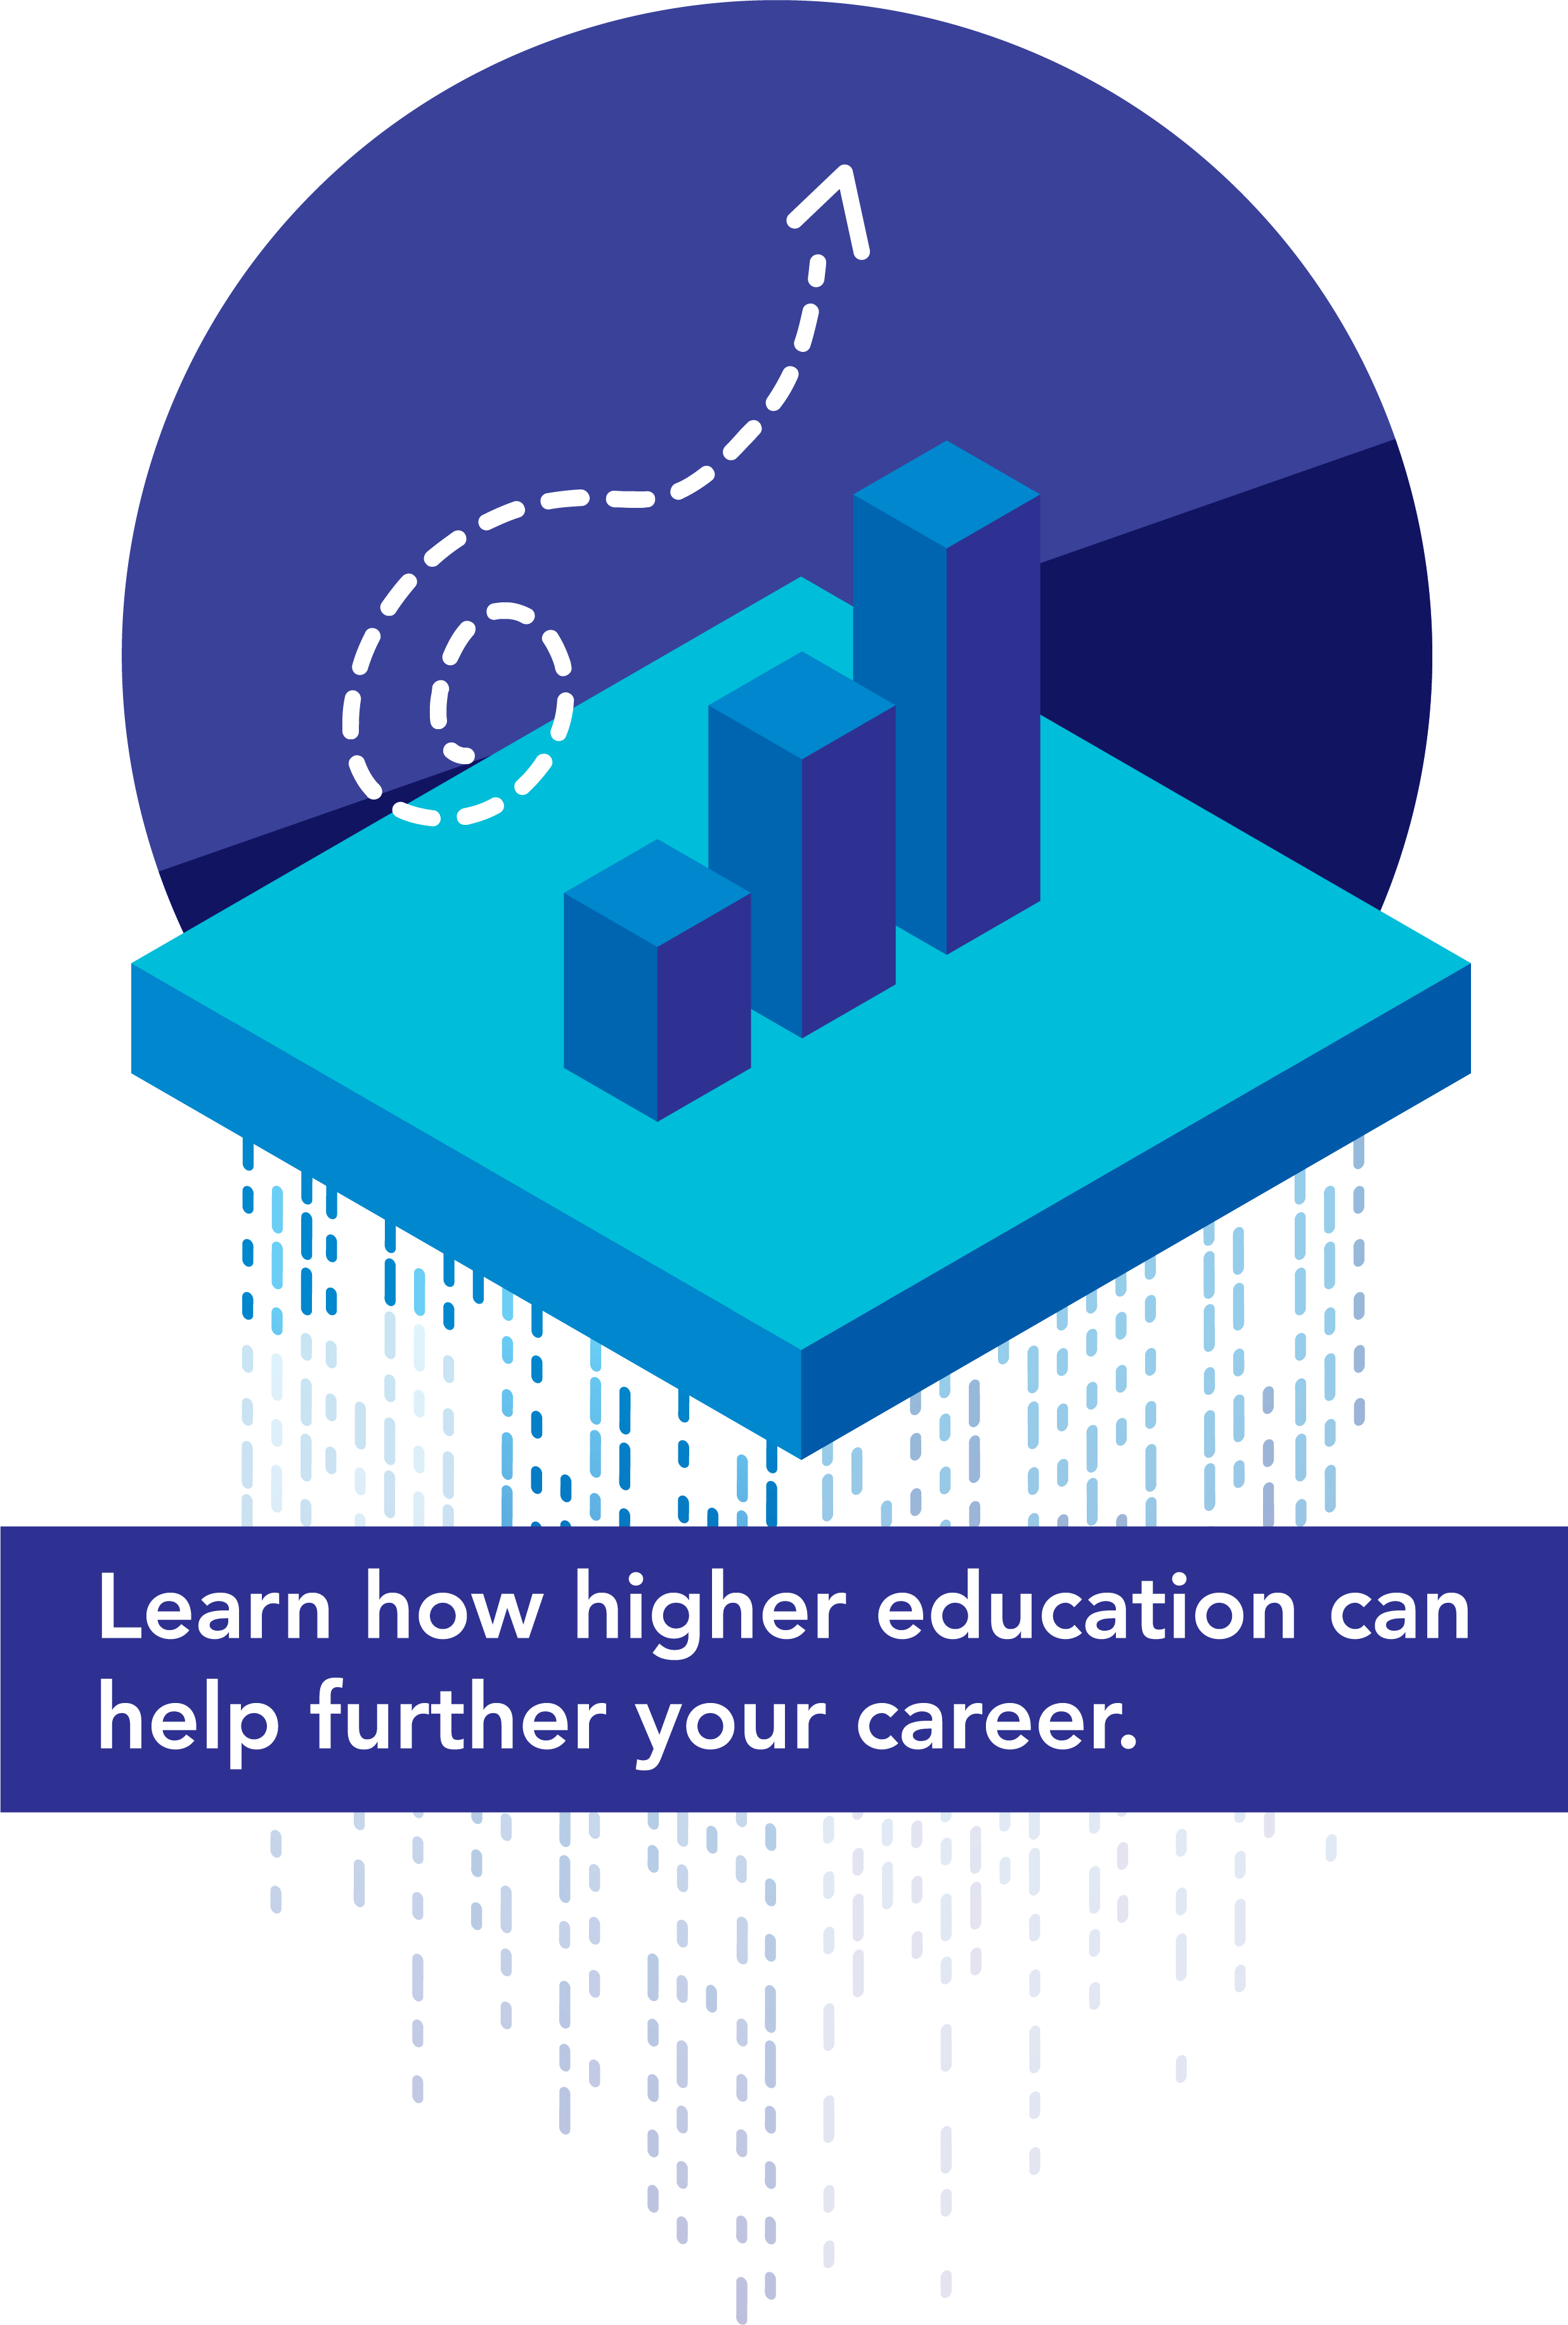 Learn how higher education can help further your career graphic